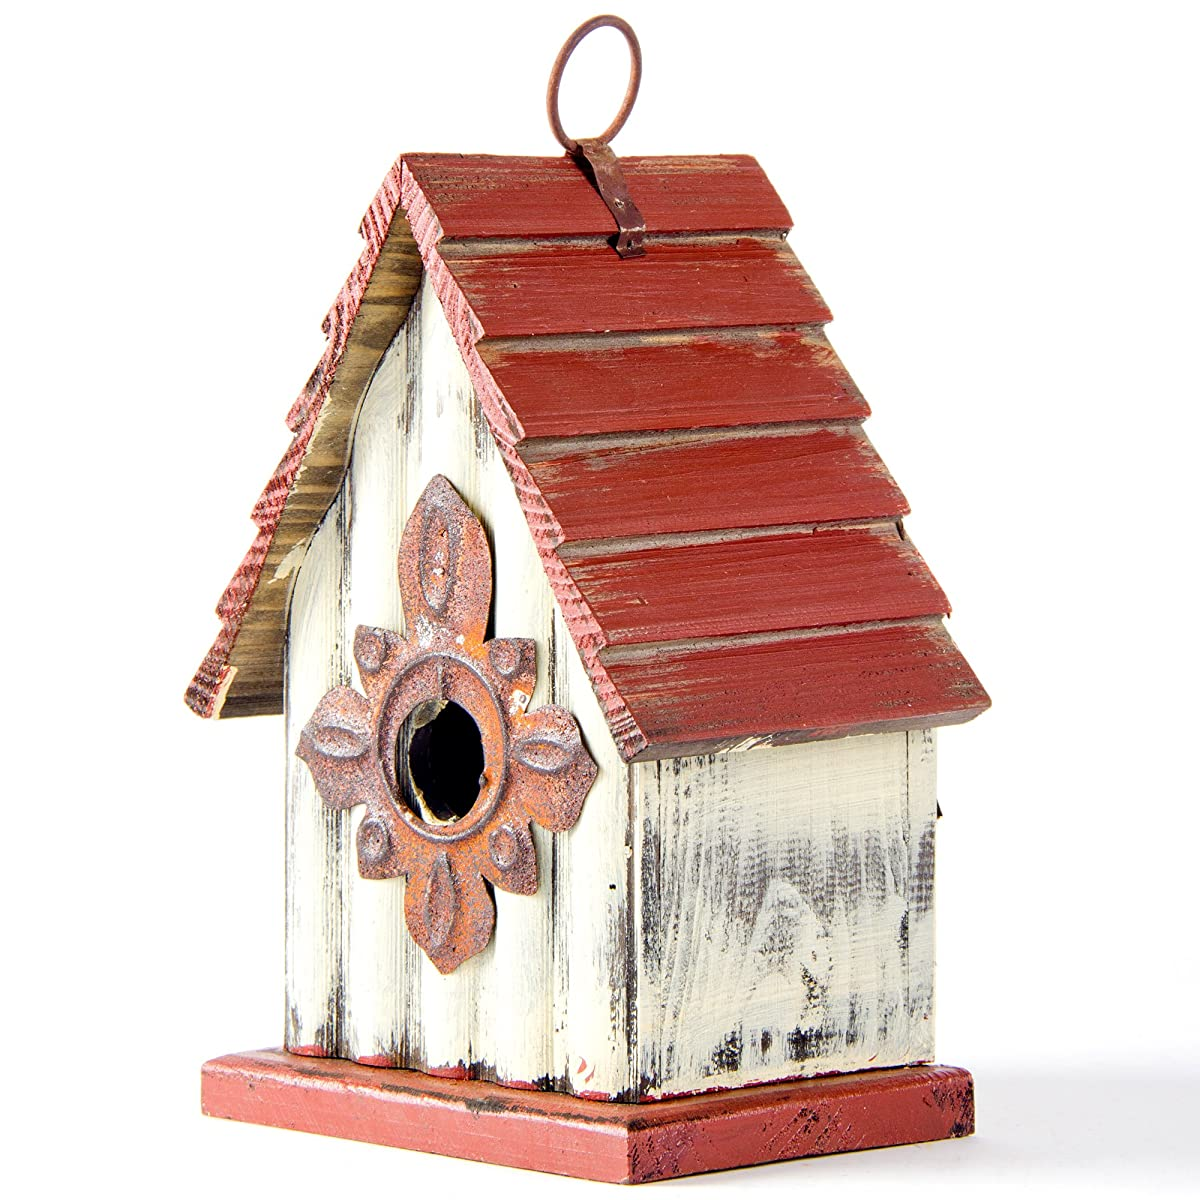 Glitzhome Tall White/Red Hand Painted Wood Birdhouse, 8.94""